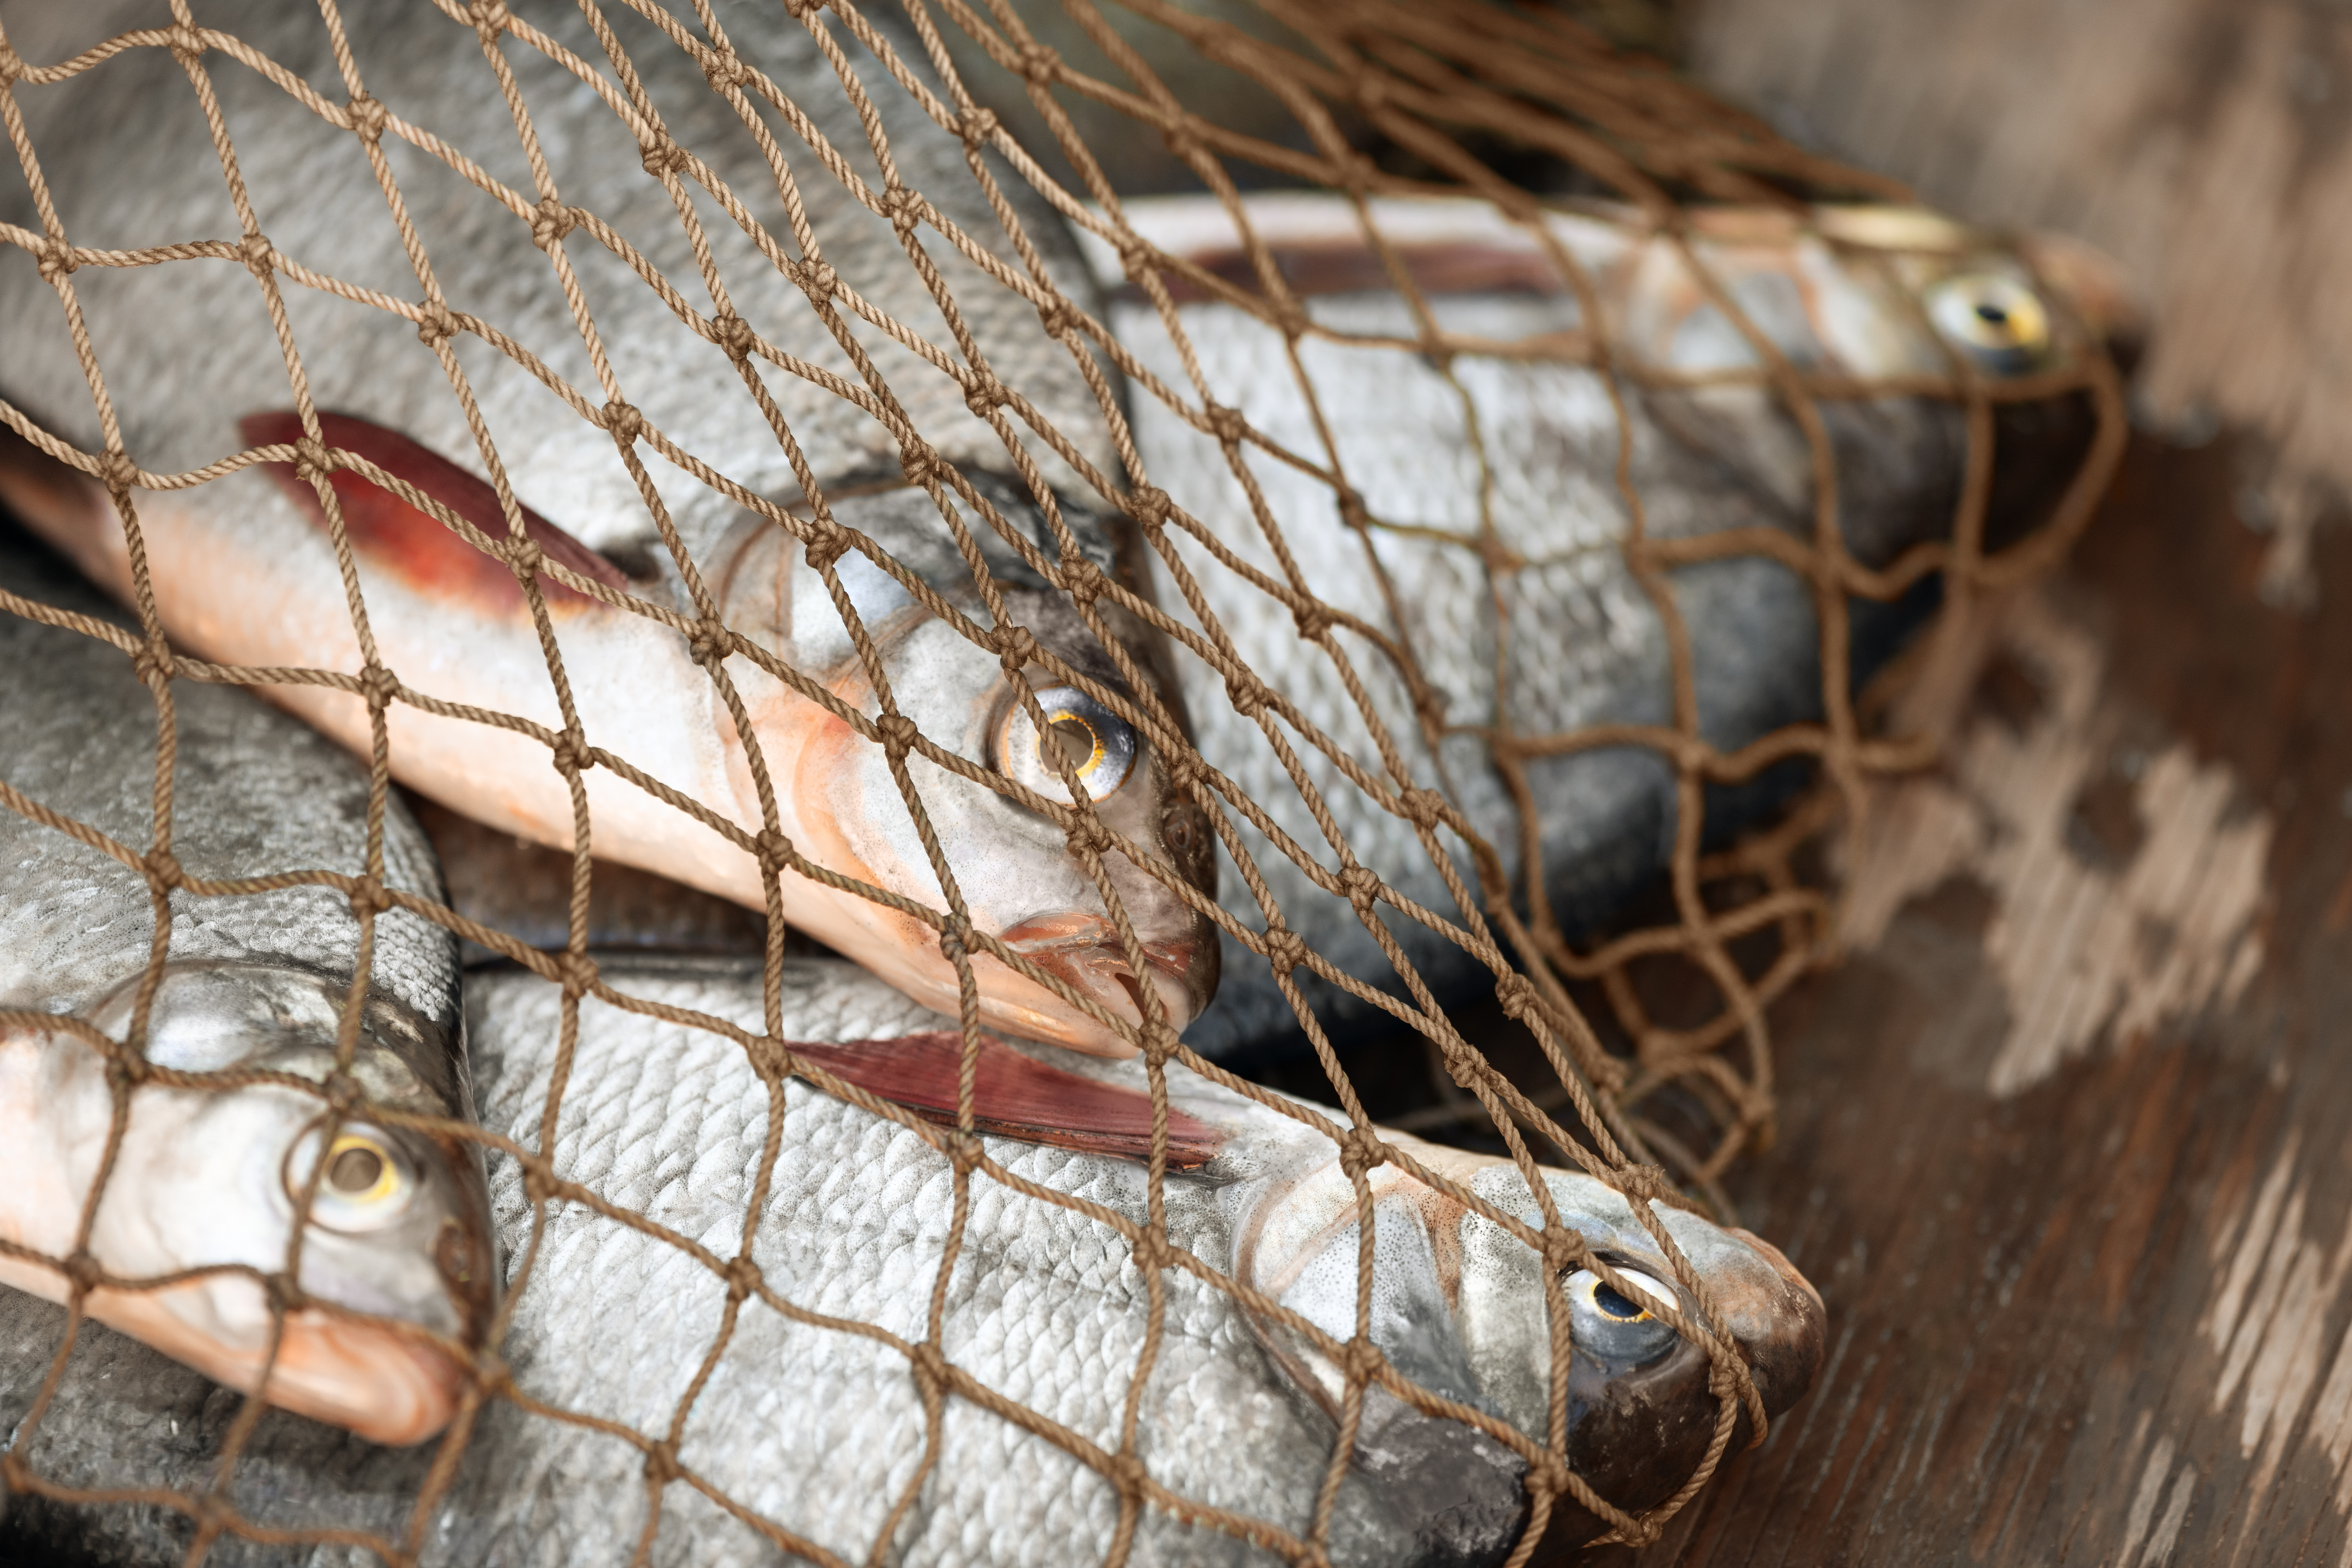 Four bream caught in a fishing net on board a boat involved in illegal, unreported and unregulated fishing. Photo: Irina Orlova/Shutterstock